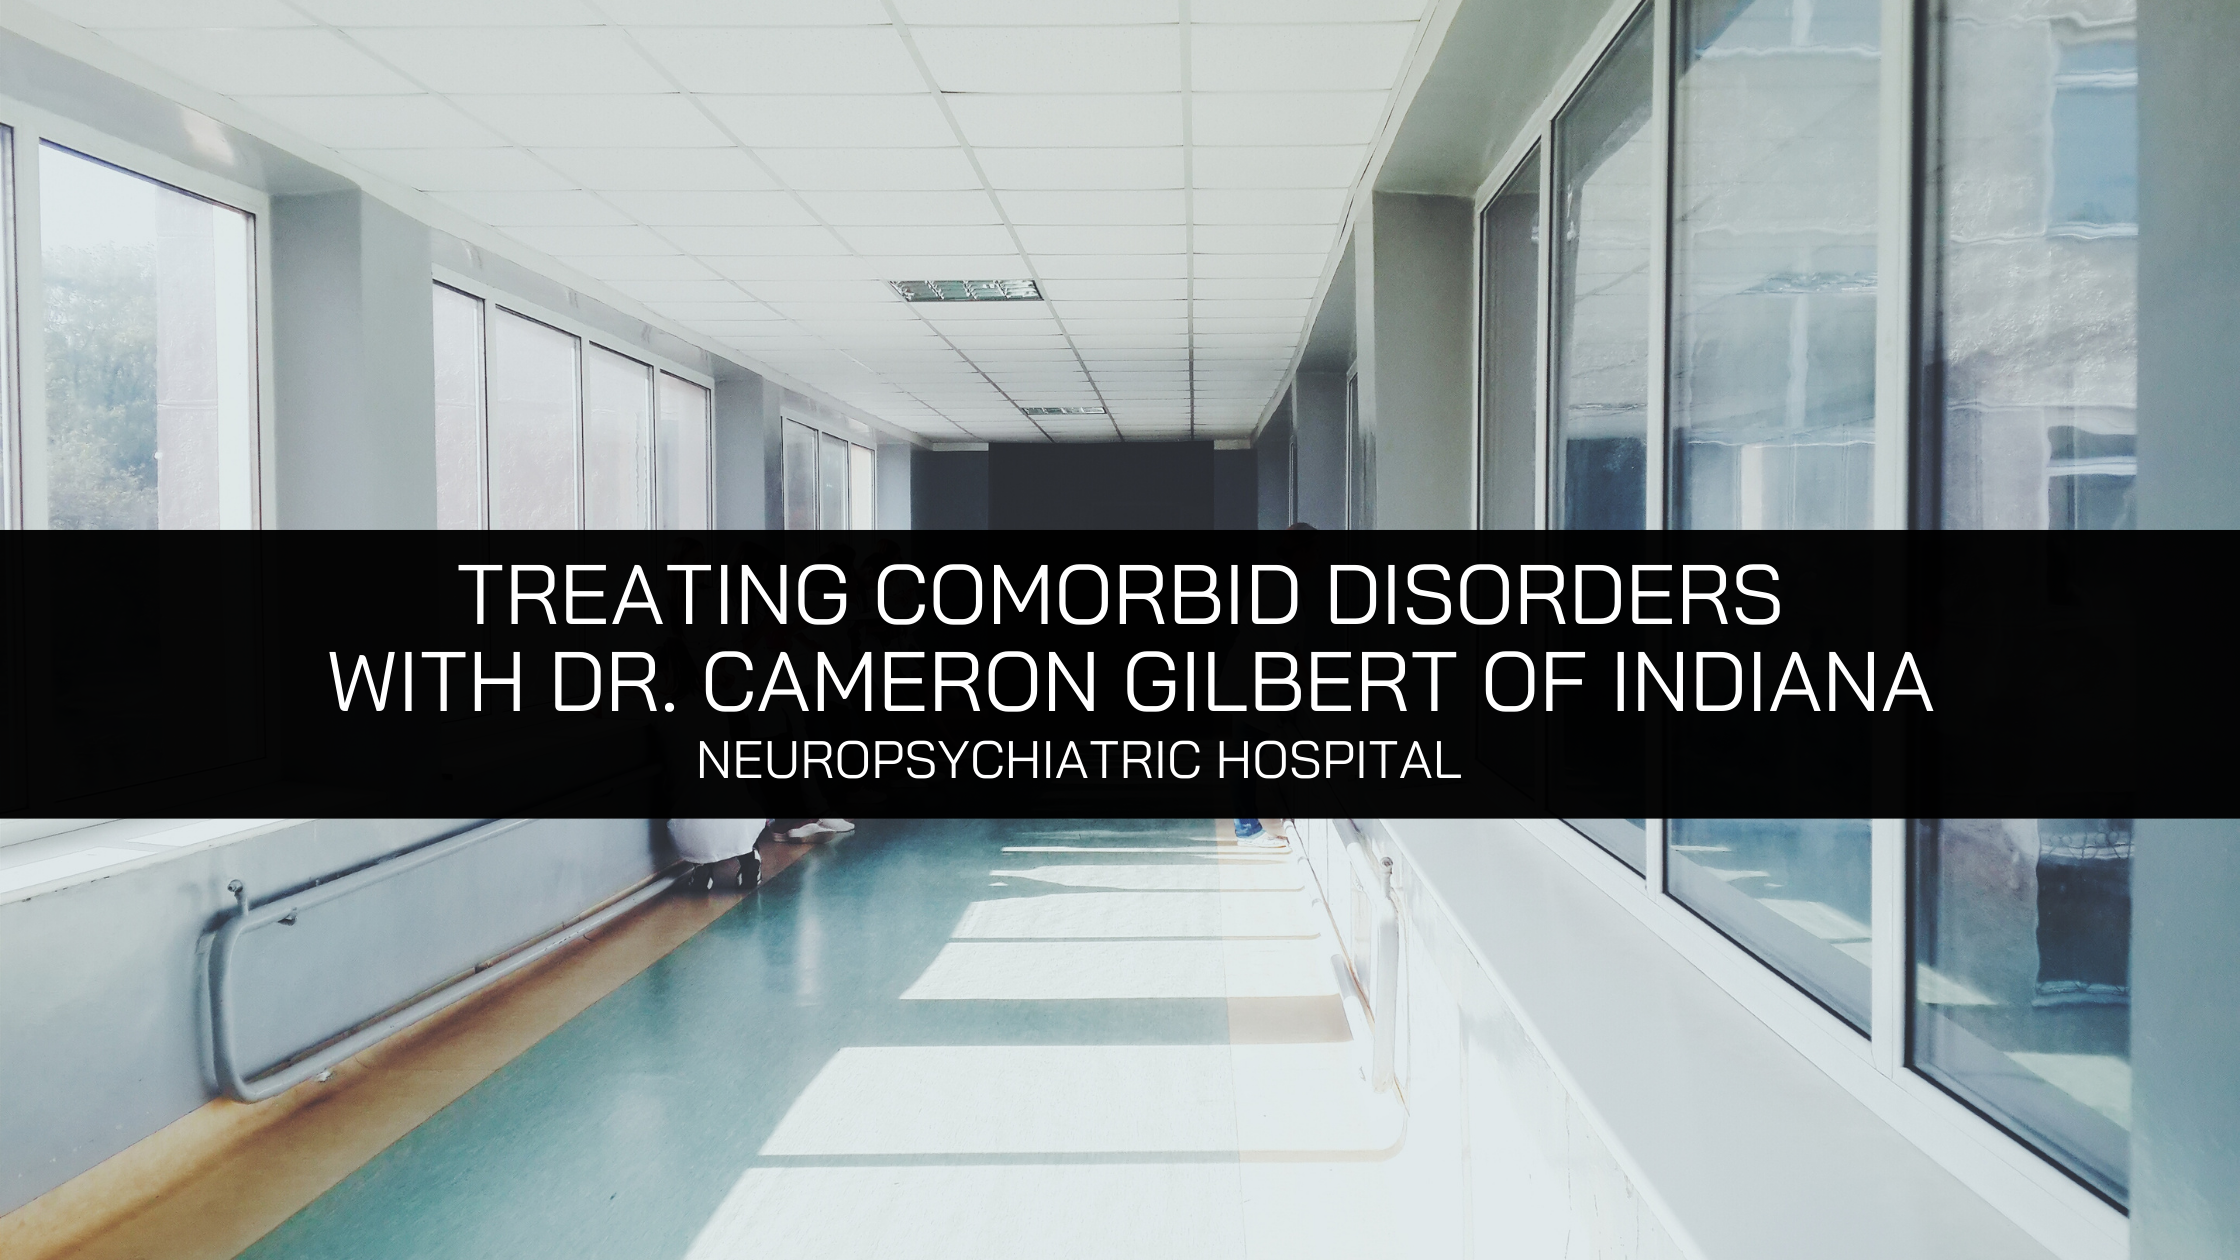 NeuroPsychiatric Hospitals' Expansion Approach To Treating Comorbid Disorders With Dr. Cameron Gilbert of Indiana